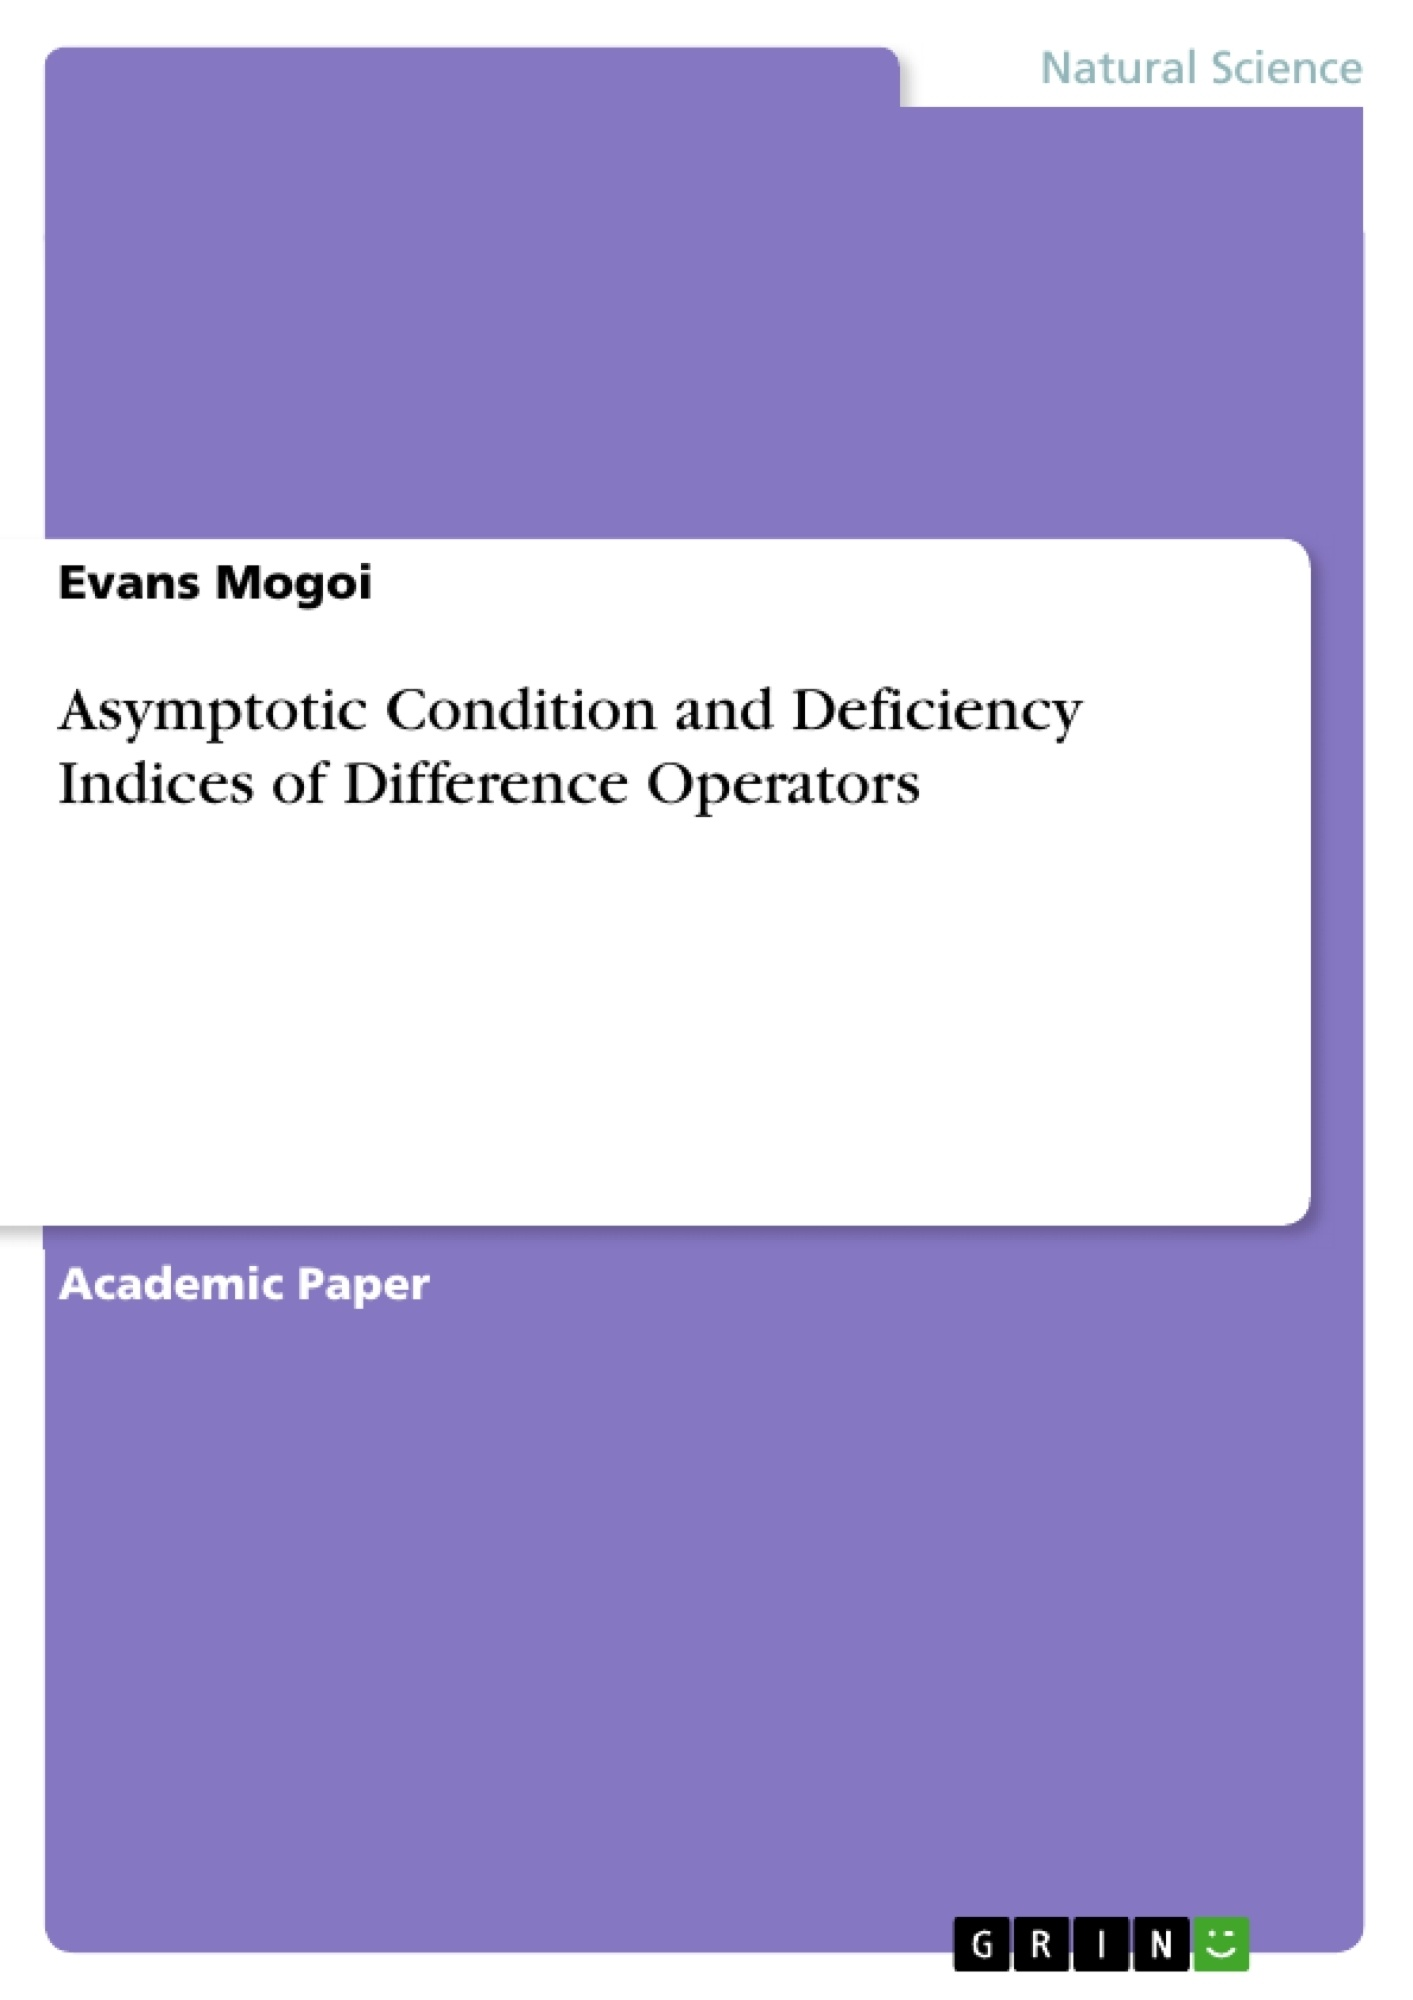 Title: Asymptotic Condition and Deficiency Indices of Difference Operators